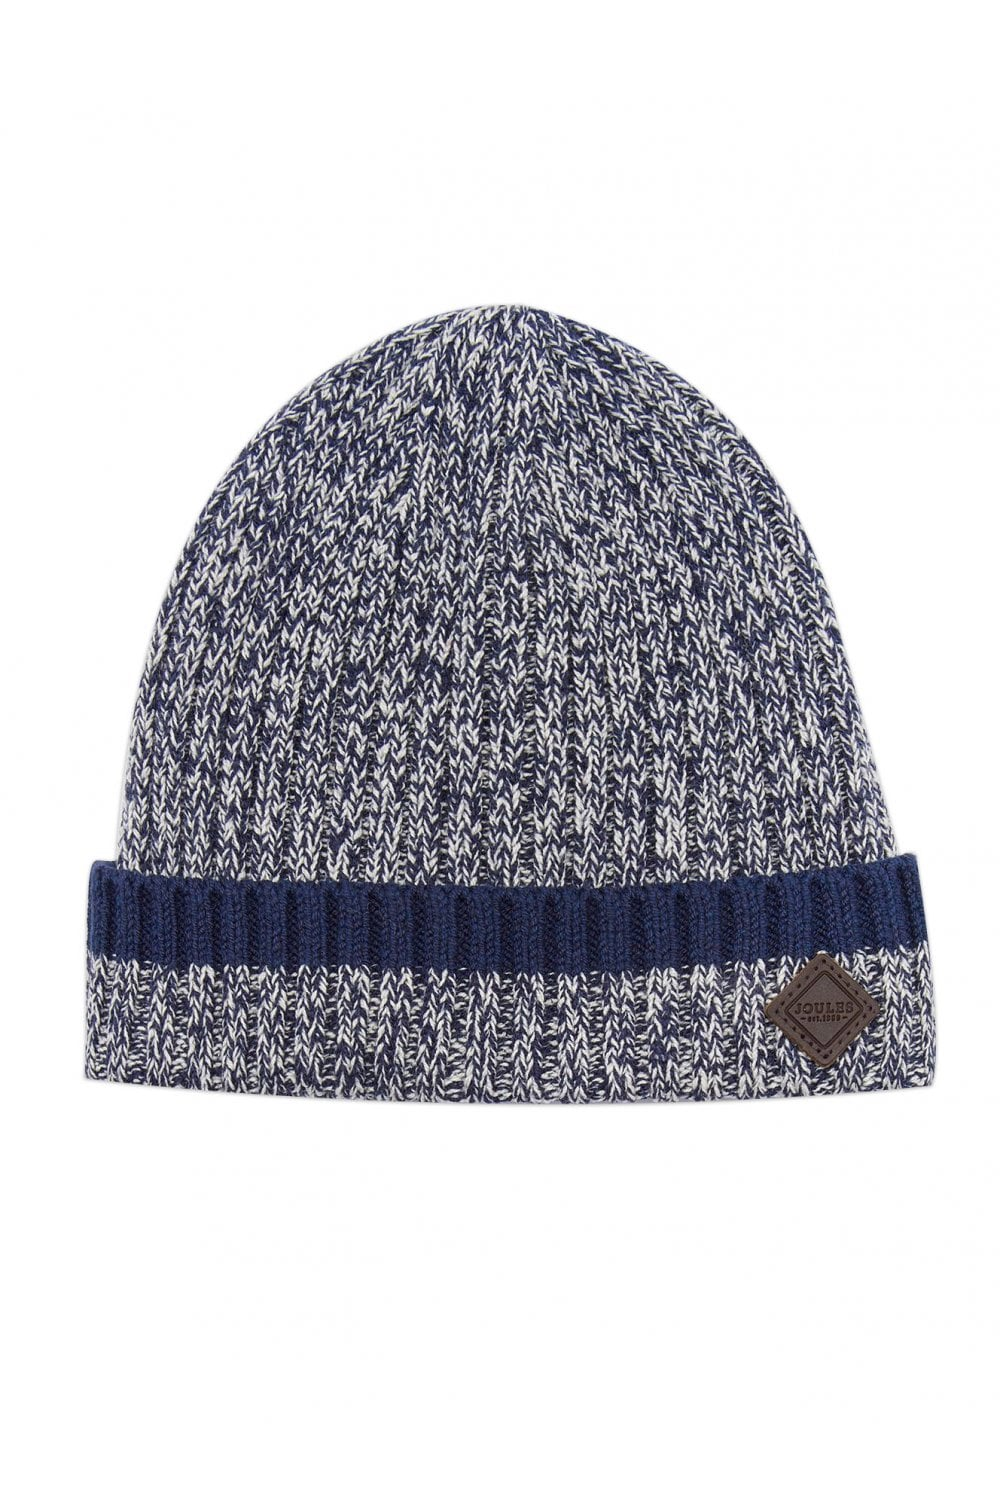 55c22b669d1327 Joules Mens Oarswell Knitted Hat - Navy/Cream - Menswear from ...